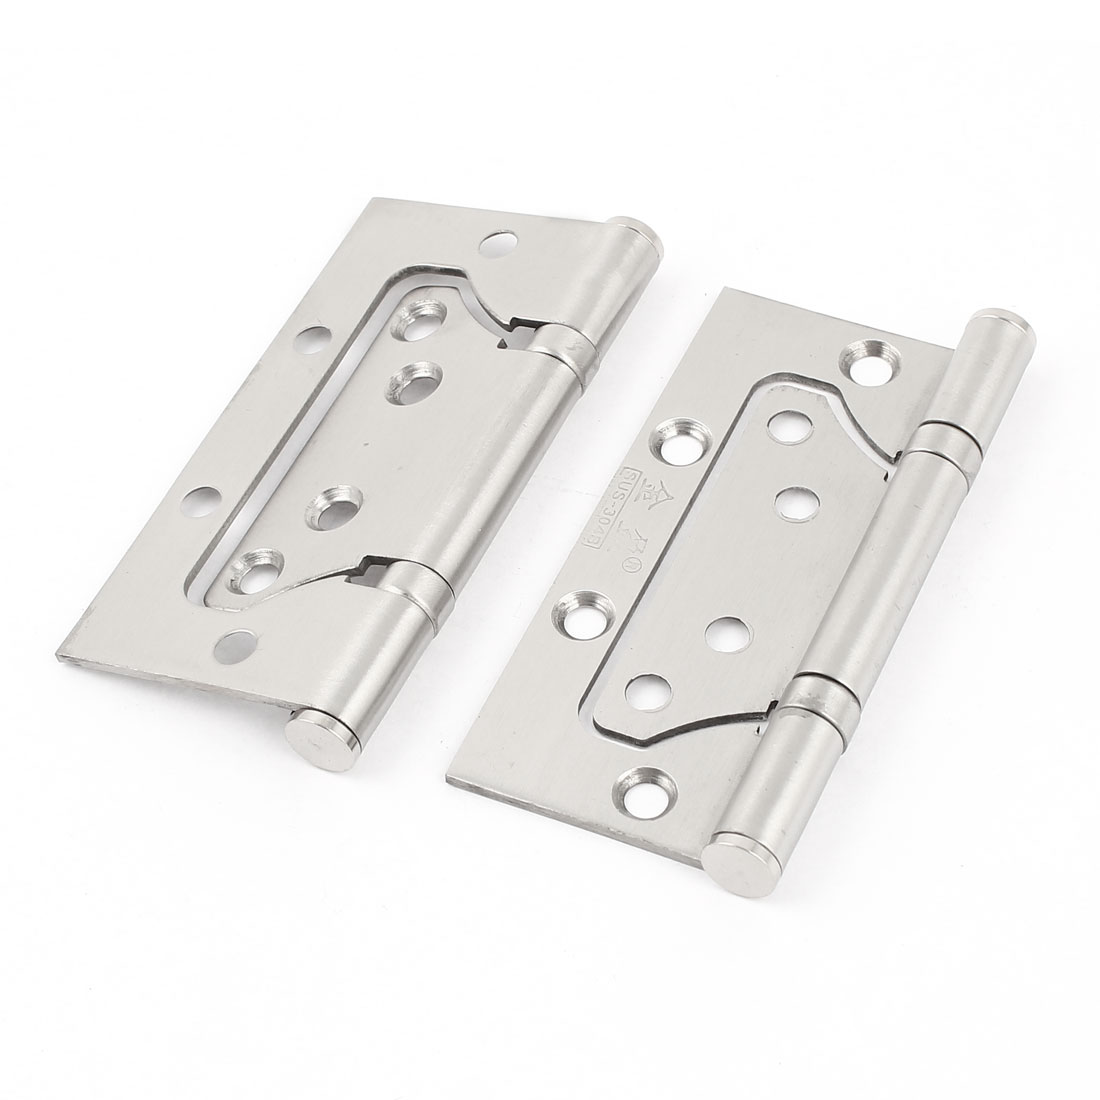 "Pair Hardware Silver Tone Folding Cupboard Cabinet Closet Door Hinge 4"" Long"